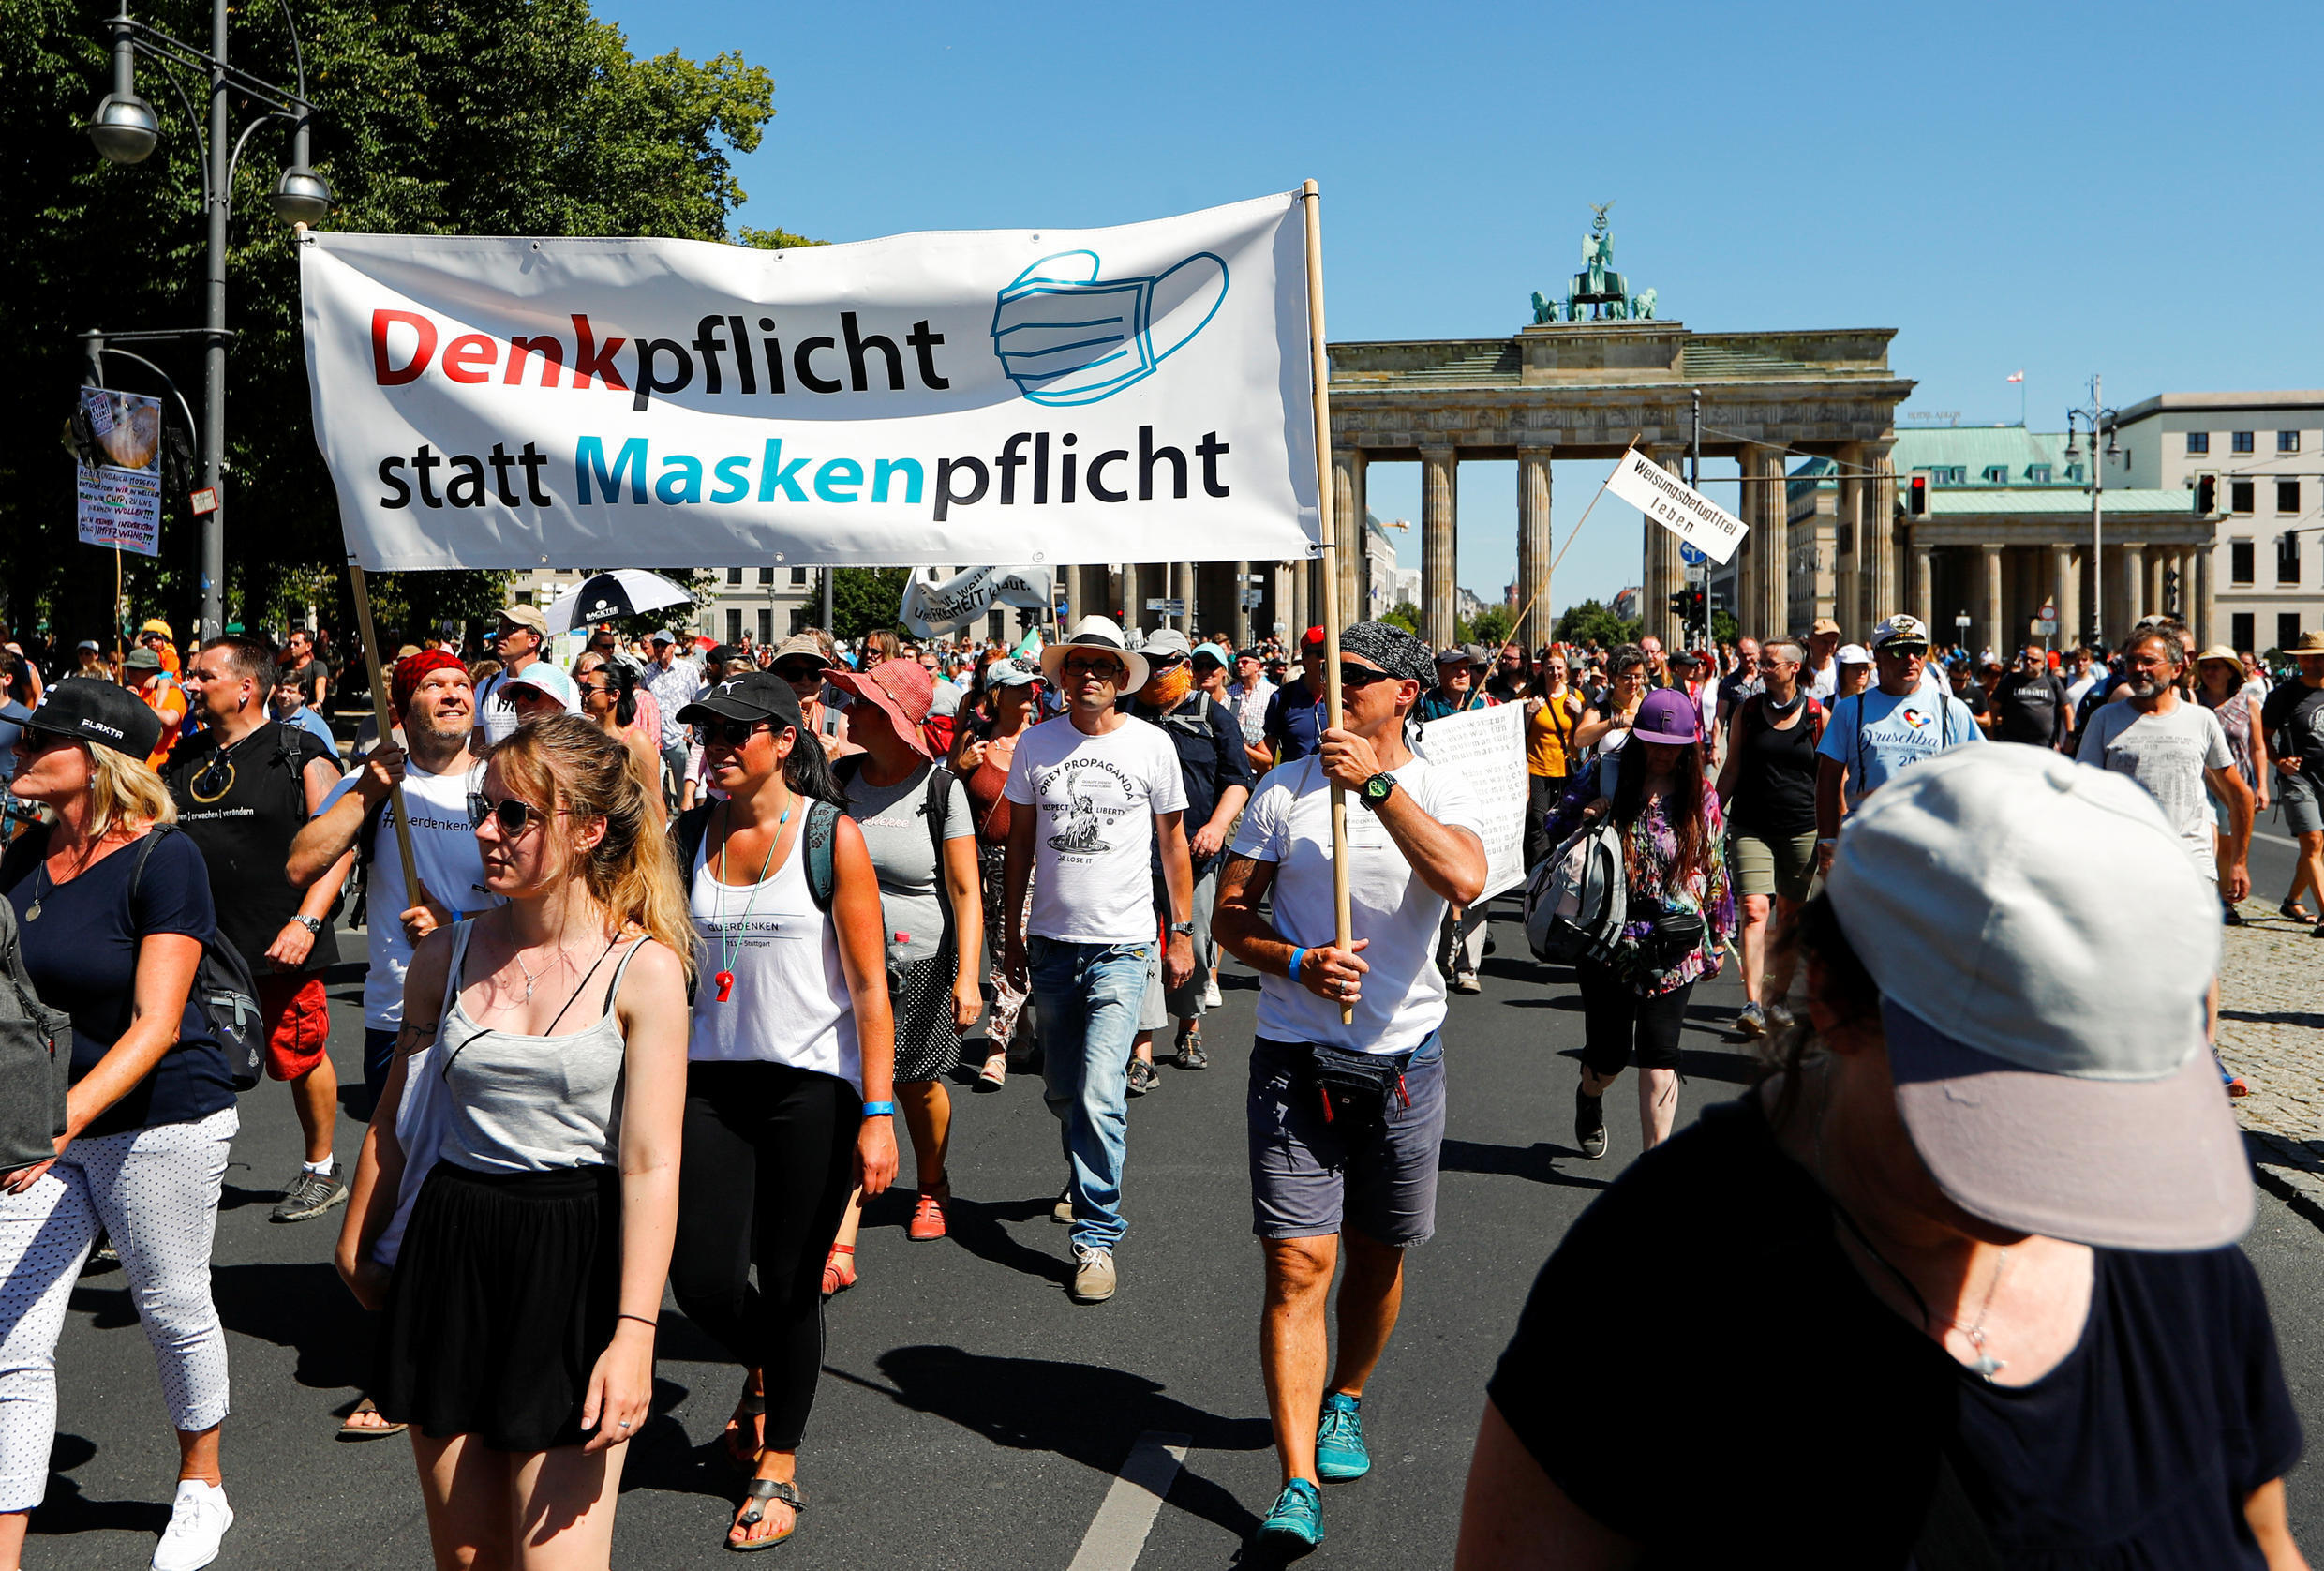 """Demonstrators hold a banner reading """"Thinking instead of masking"""" during a protest against the government's restrictions amid the coronavirus disease (COVID-19) outbreak, in Berlin, Germany, August 1, 2020."""